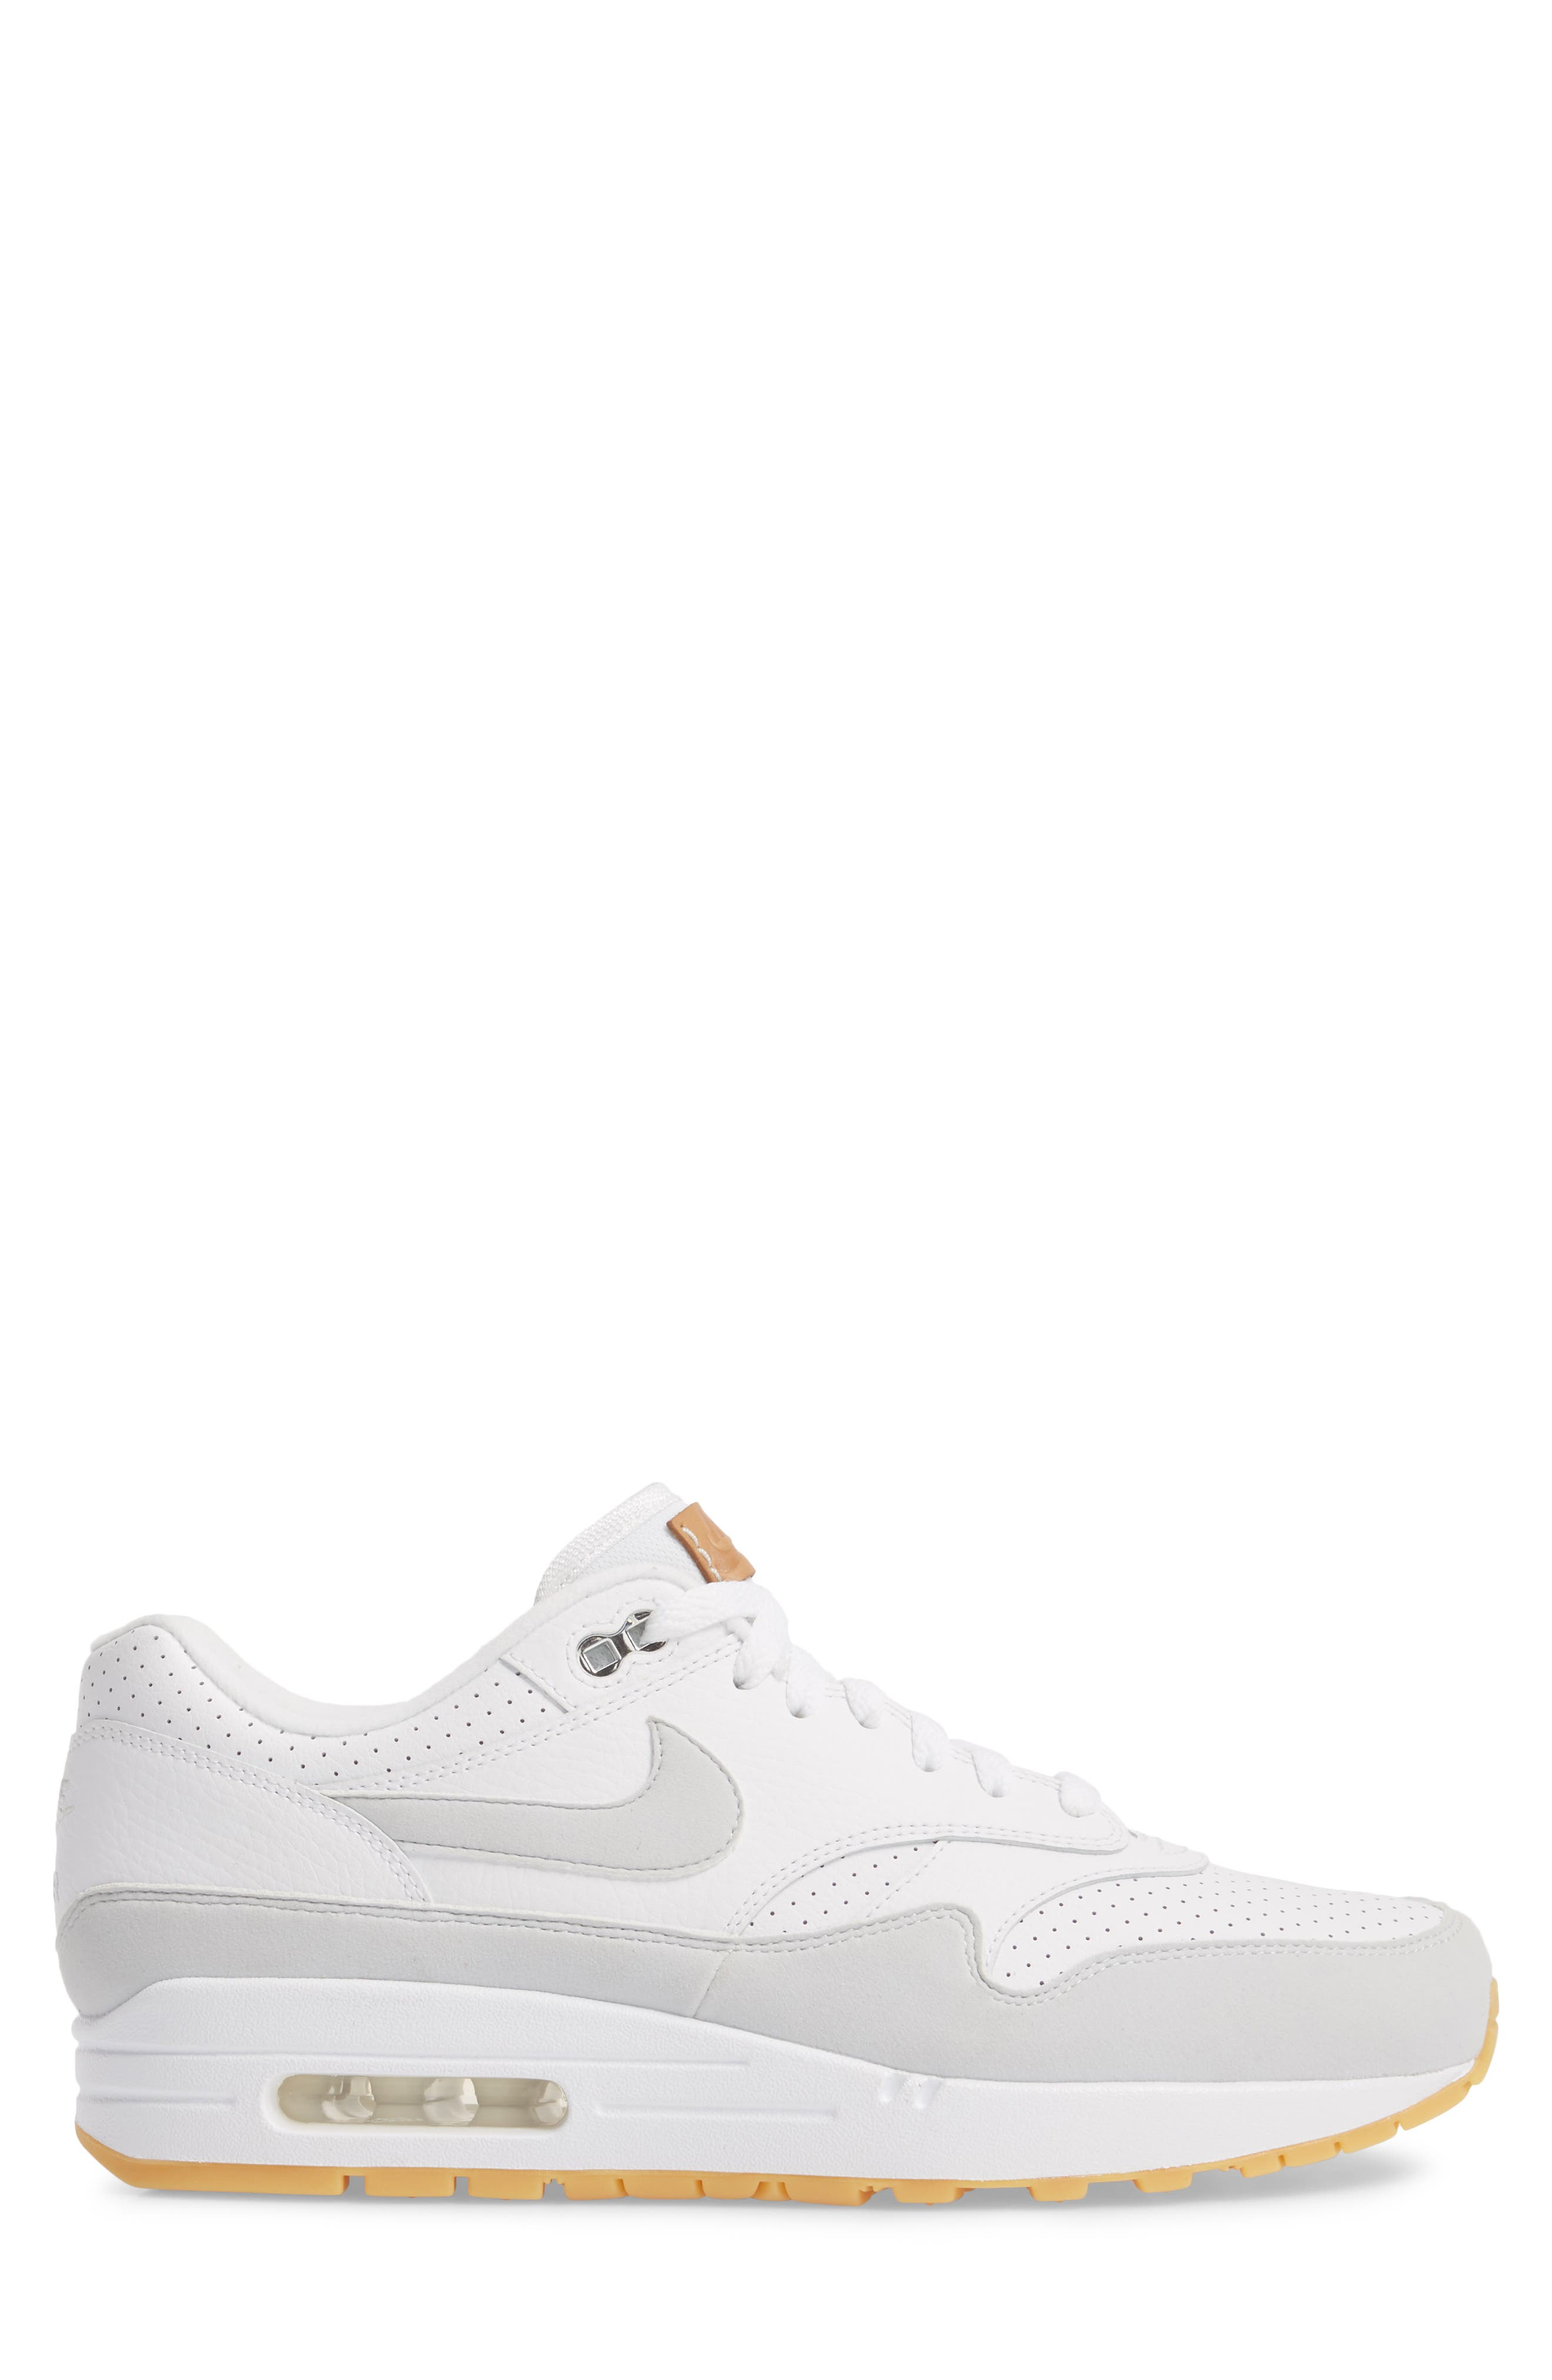 Air Max 1 Sneaker,                             Alternate thumbnail 3, color,                             WHITE/ PURE PLATINUM/ YELLOW